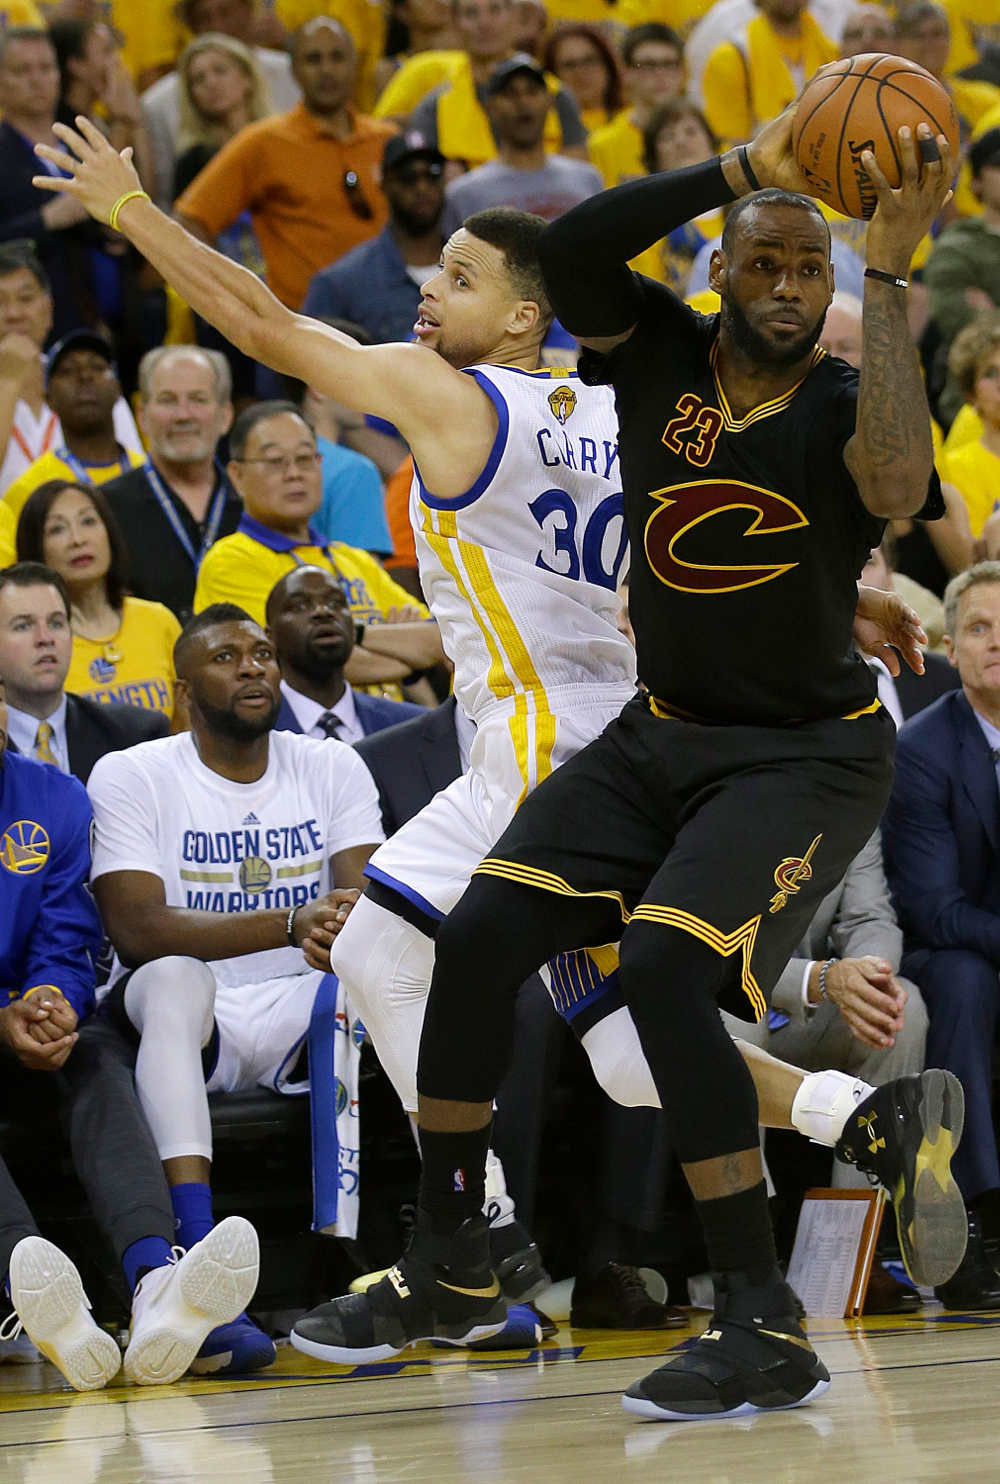 Cleveland Cavaliers forward LeBron James is defended by Golden State Warriors guard Stephen Curry